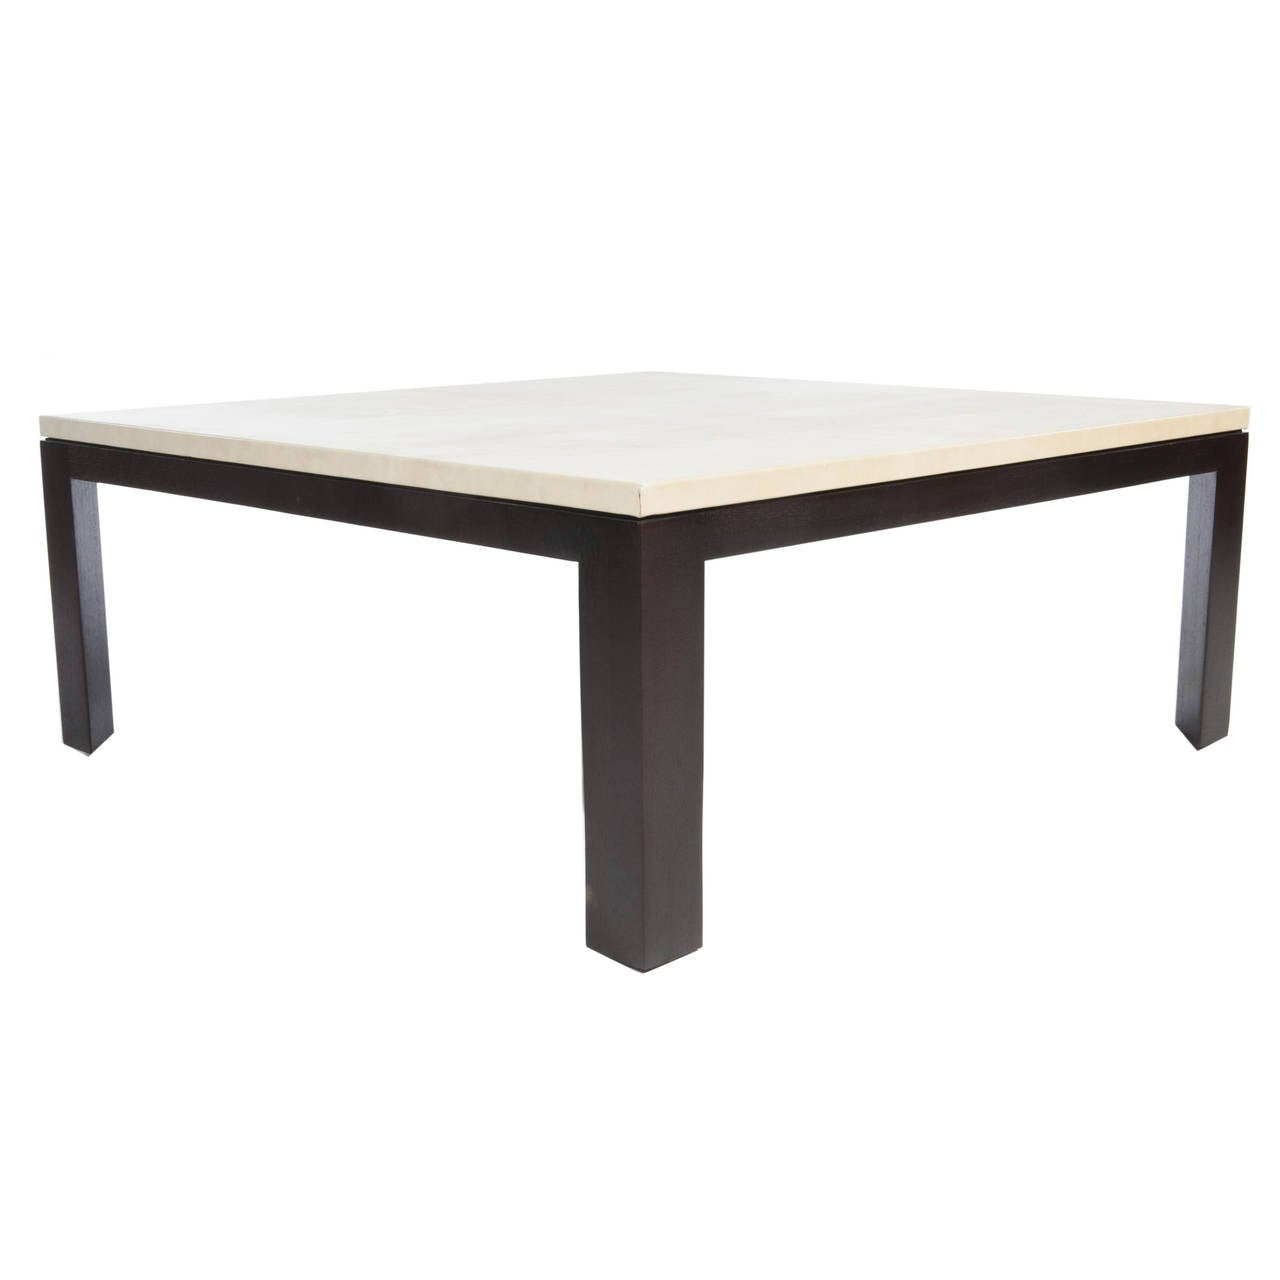 Square leather top cocktail table by edward wormley for dunbar at 1stdibs Square leather coffee table